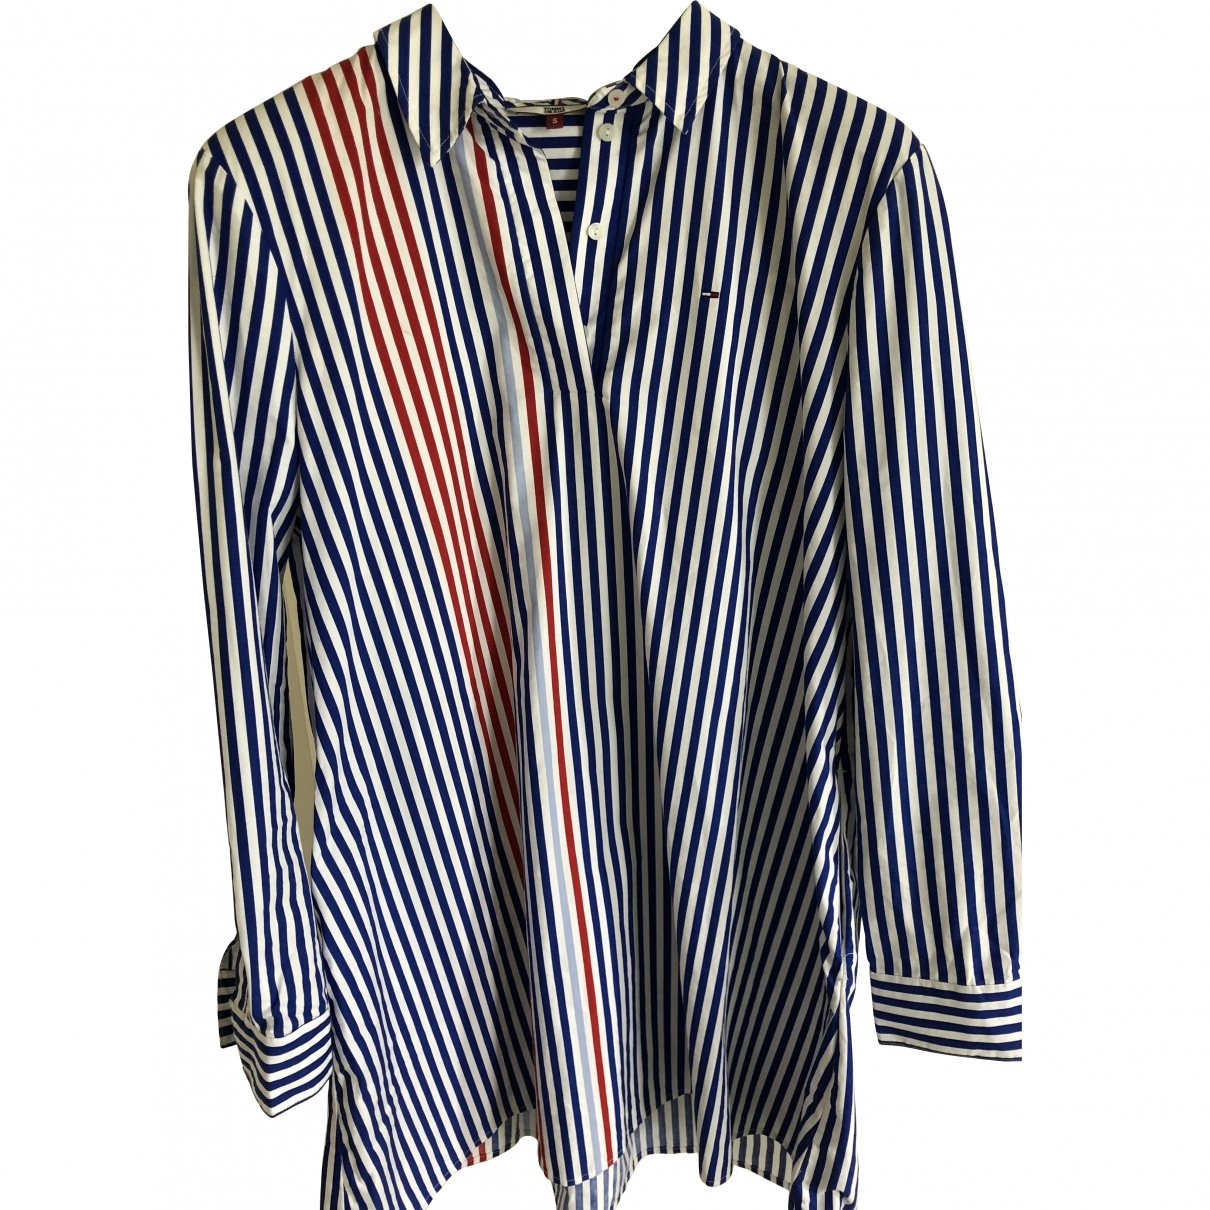 Tommy Jeans \N Multicolour Cotton - elasthane dress for Women S